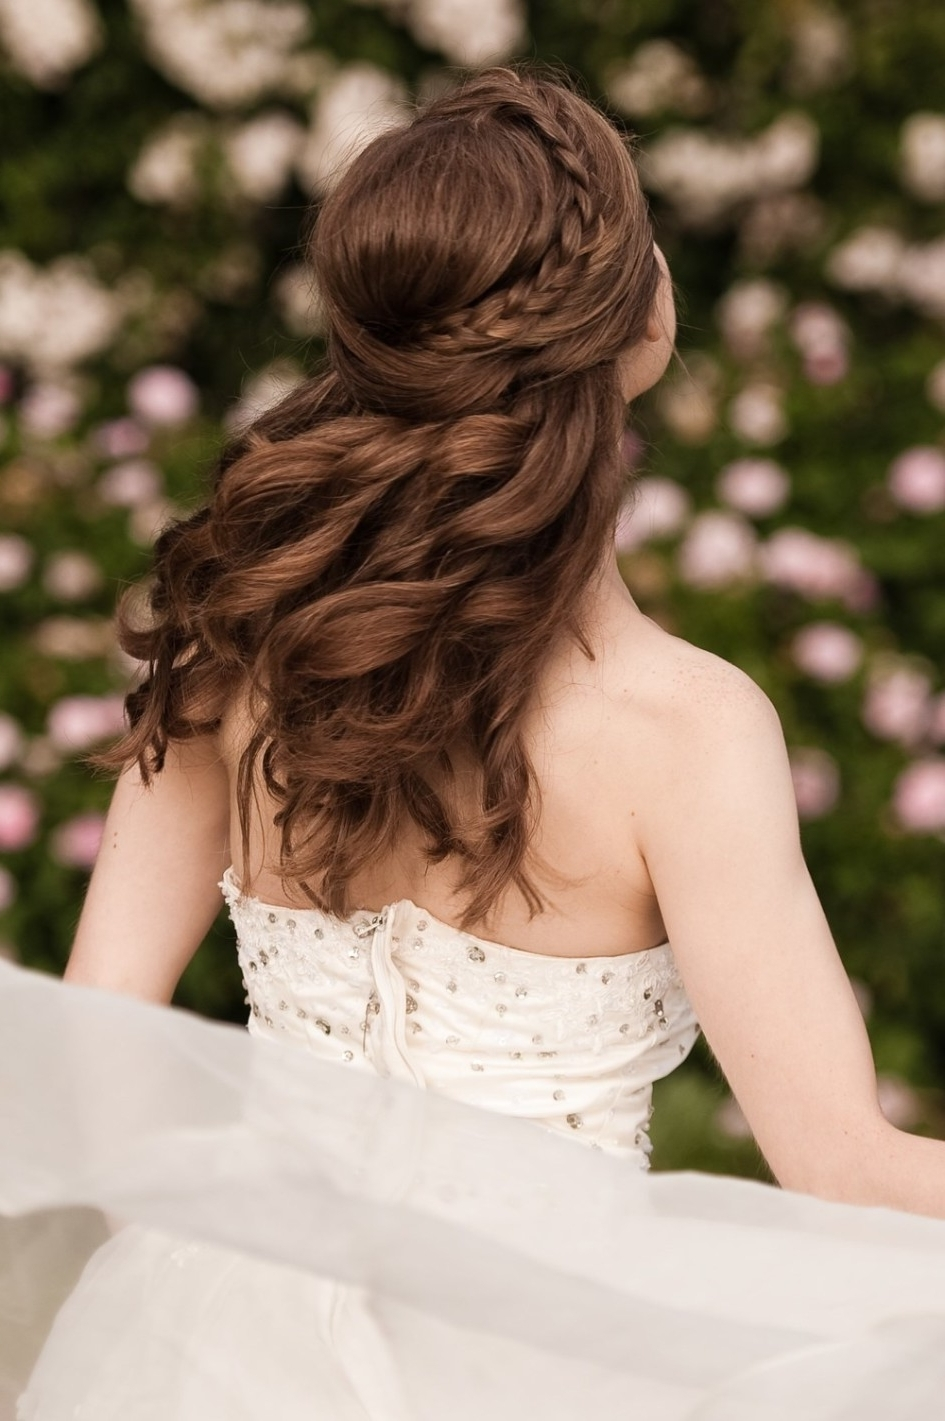 Wedding Hairstyles Ideas: Front Braided Half Up Wedding Hairstyles Inside Wedding Updos For Thick Hair (View 11 of 15)